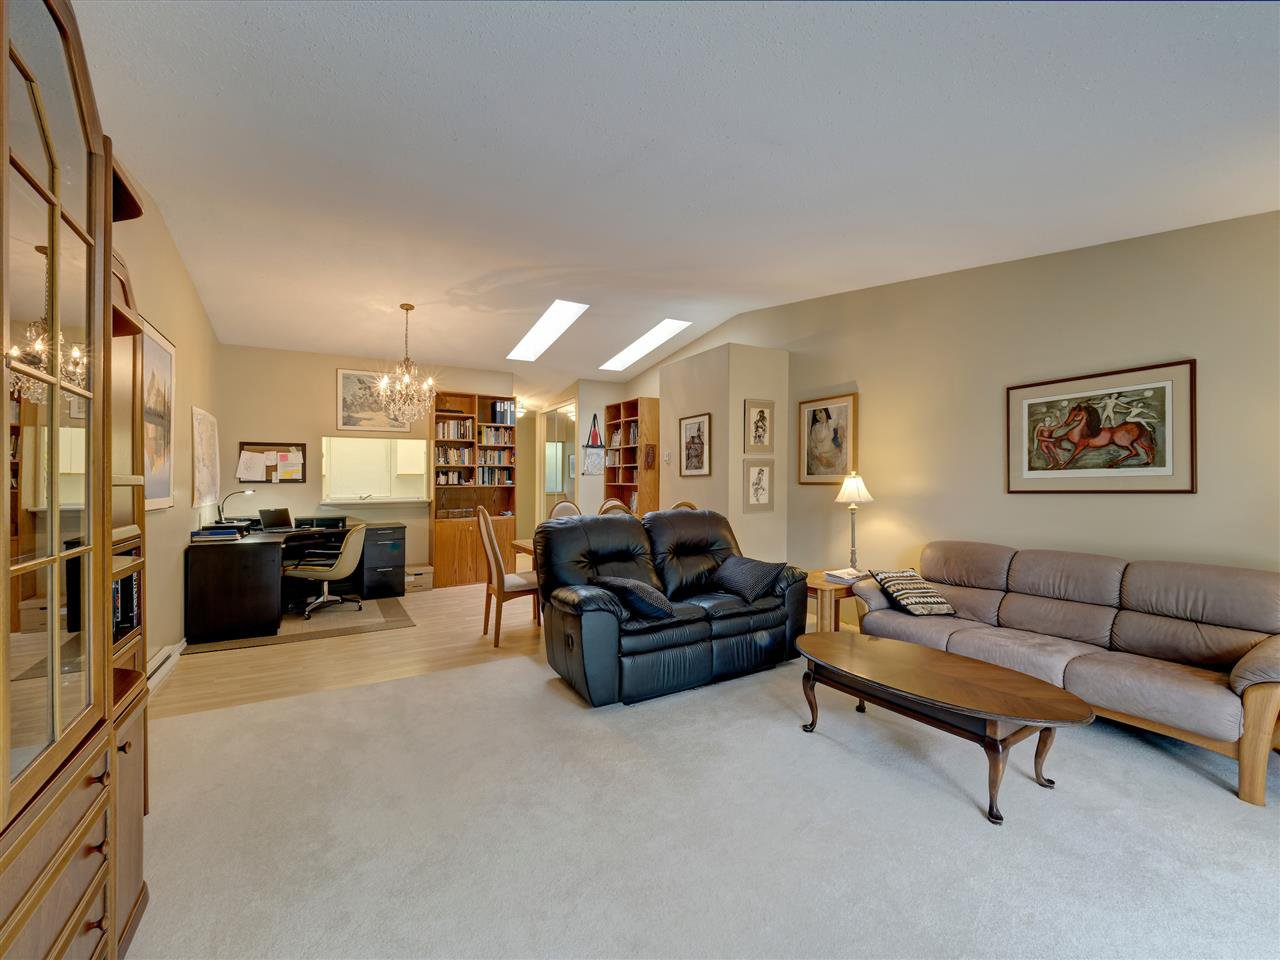 """Photo 4: Photos: 41 555 EAGLECREST Drive in Gibsons: Gibsons & Area Townhouse for sale in """"GEORGIA MIRAGE"""" (Sunshine Coast)  : MLS®# R2485008"""